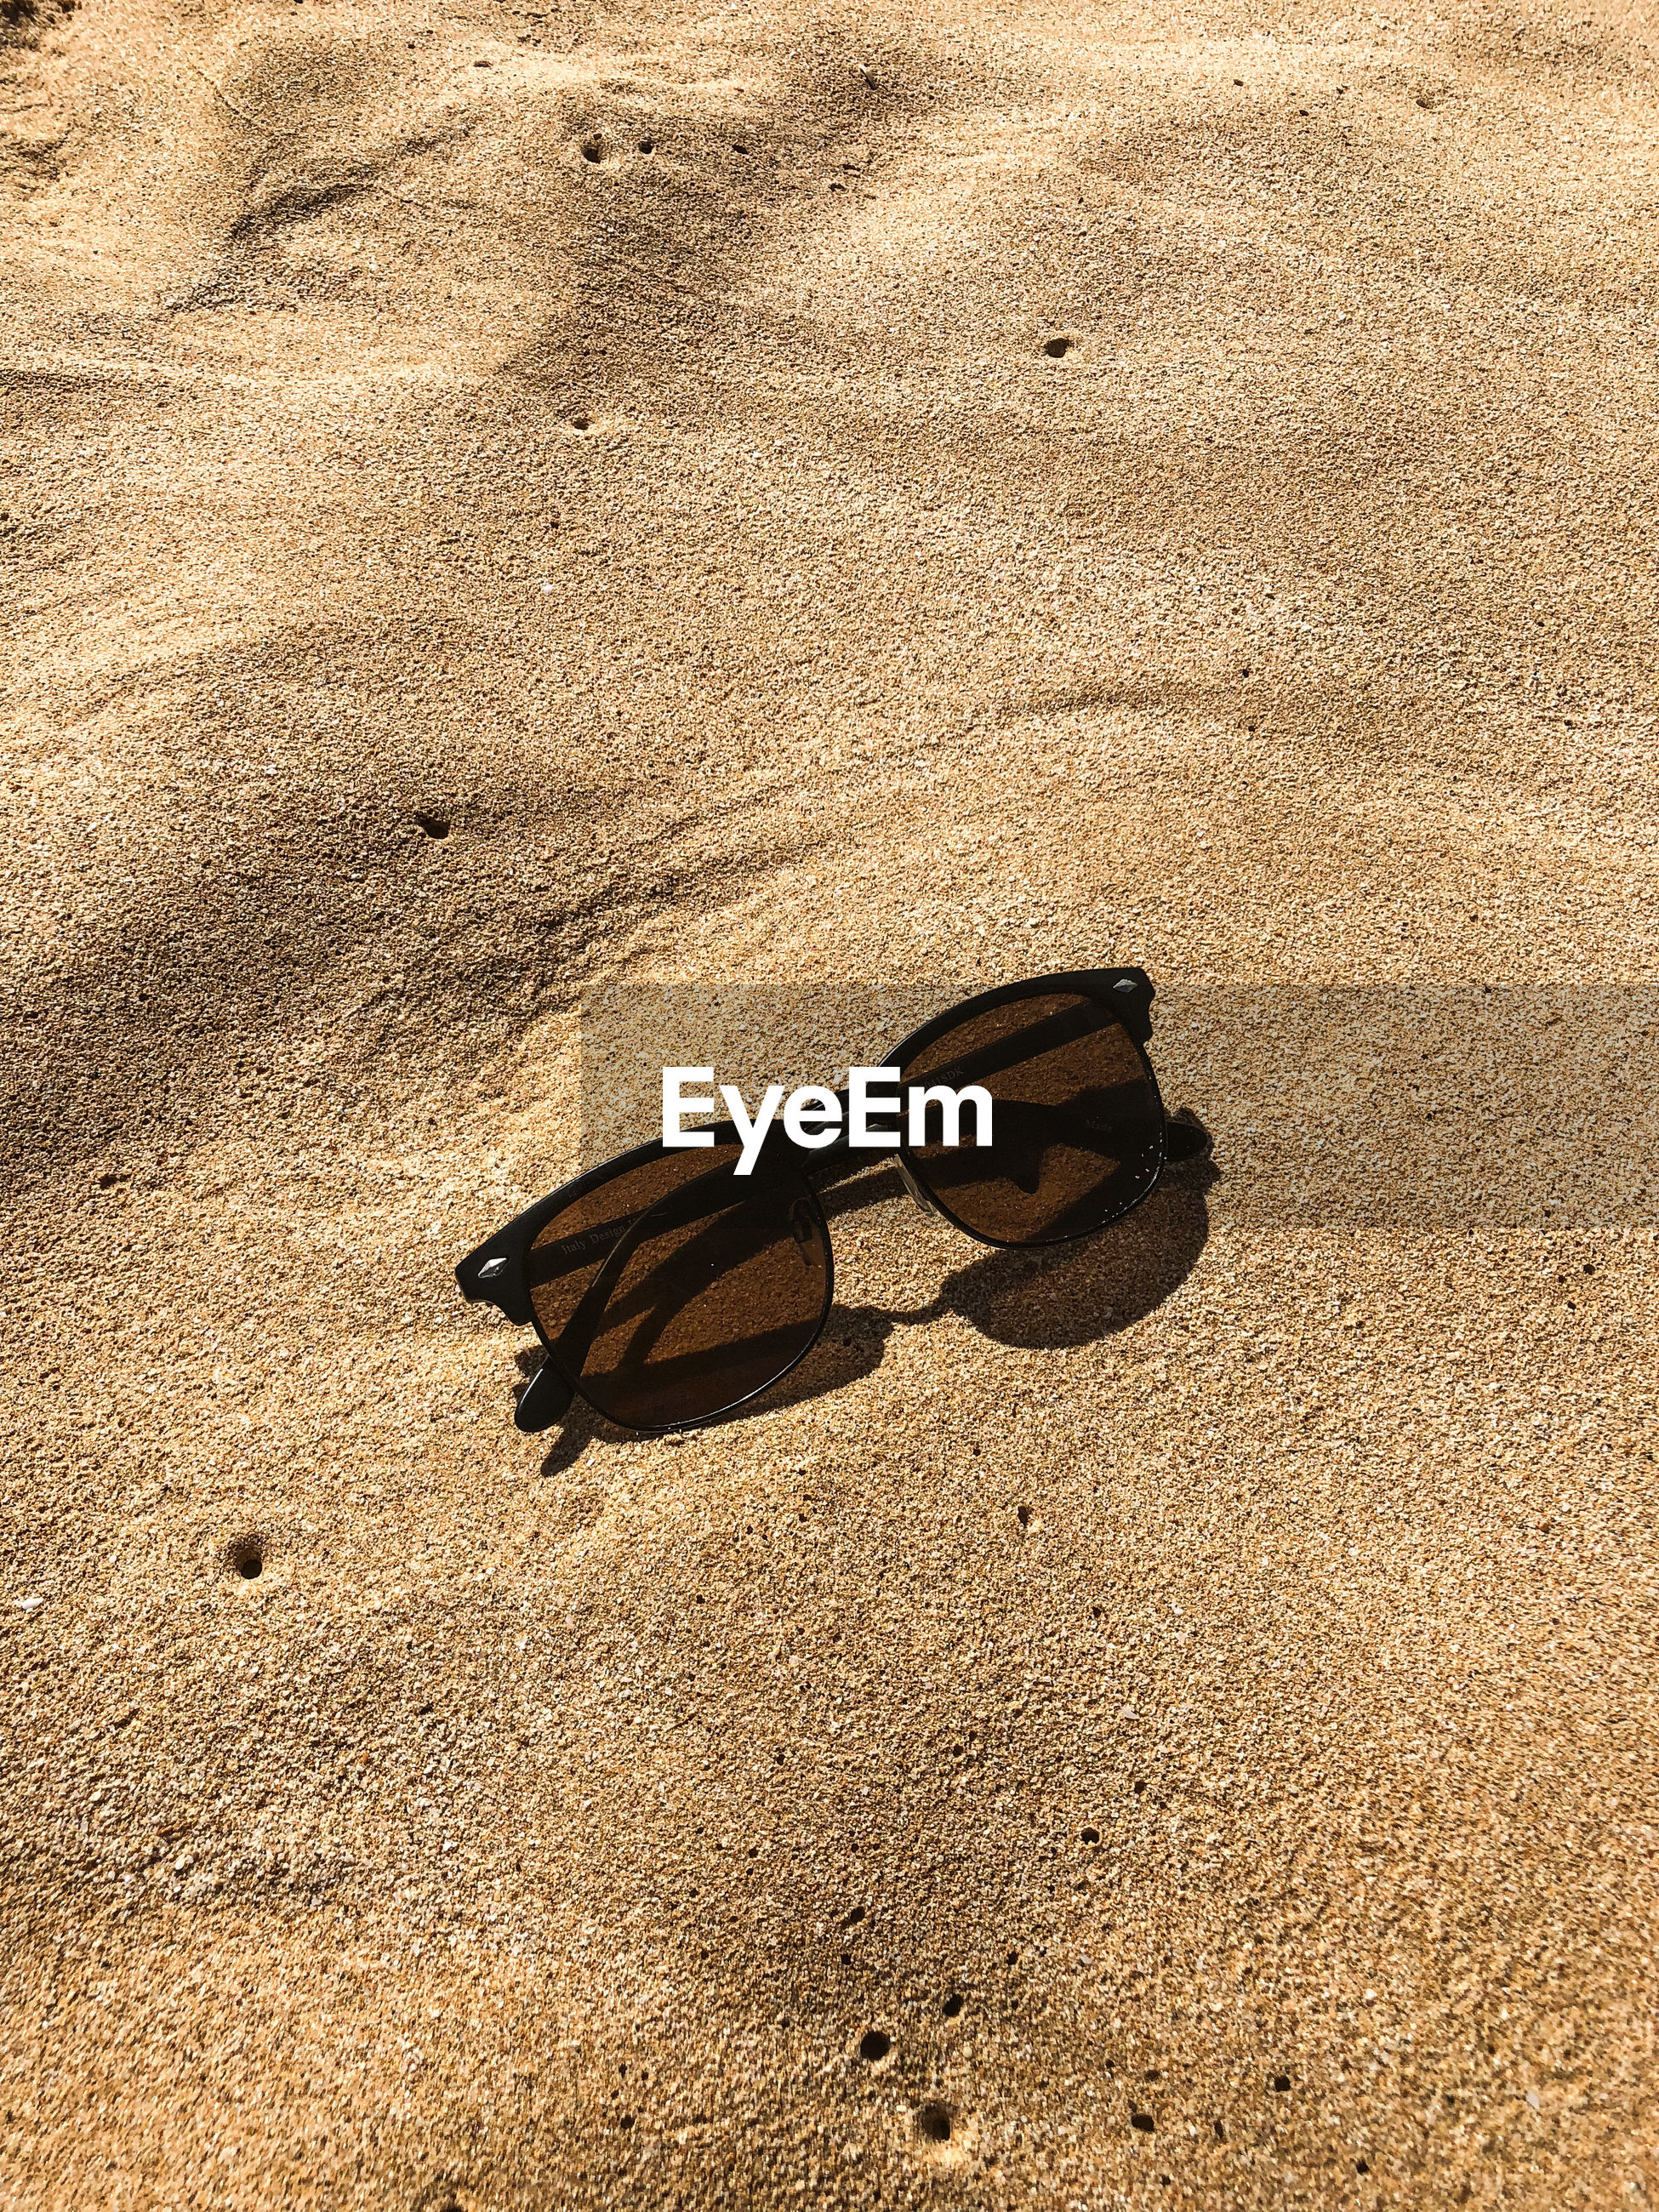 HIGH ANGLE VIEW OF BUTTERFLY ON SANDY BEACH